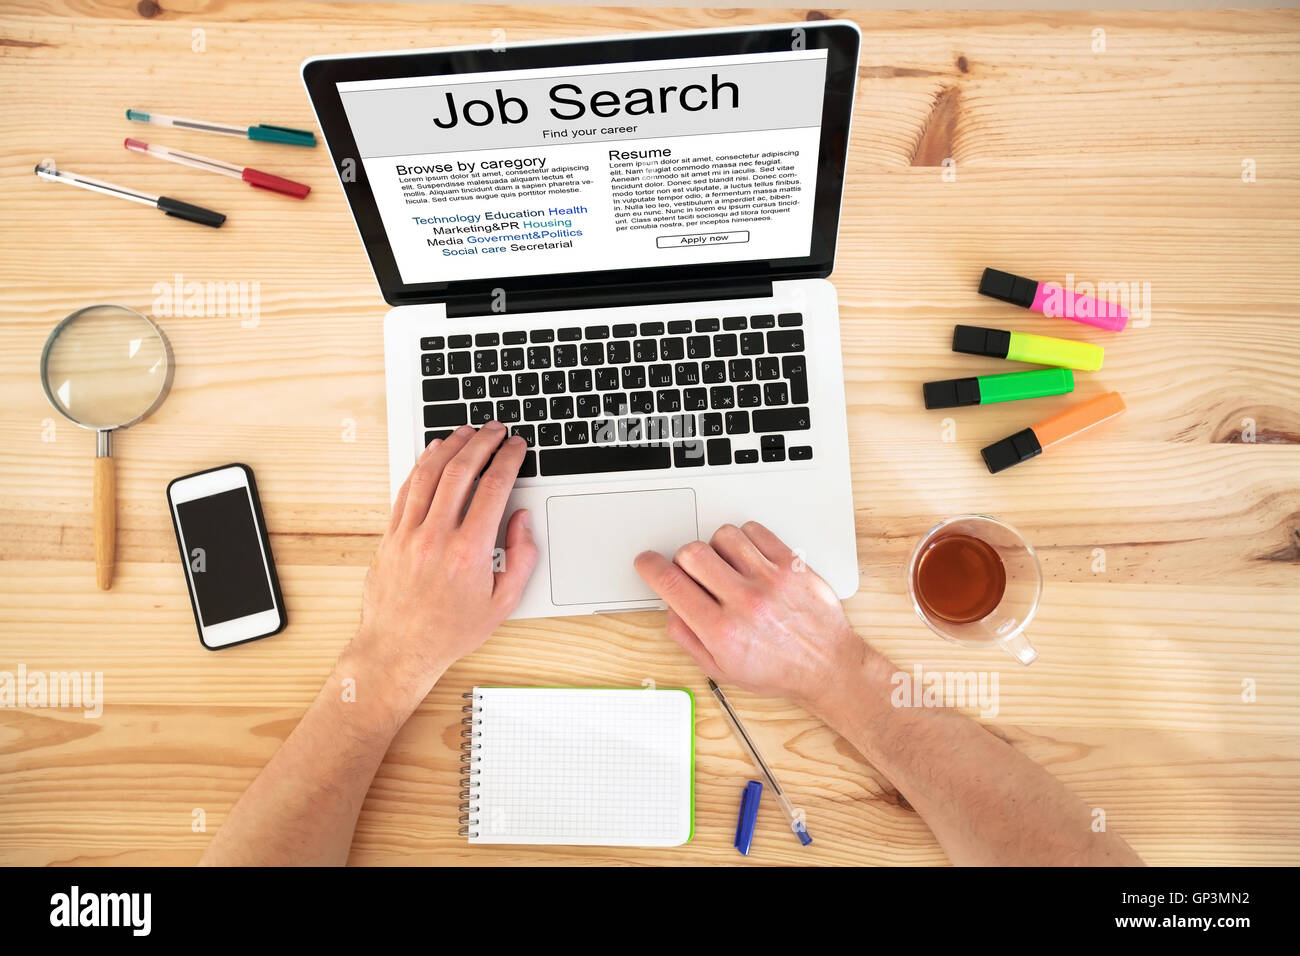 search job on internet, find career - Stock Image